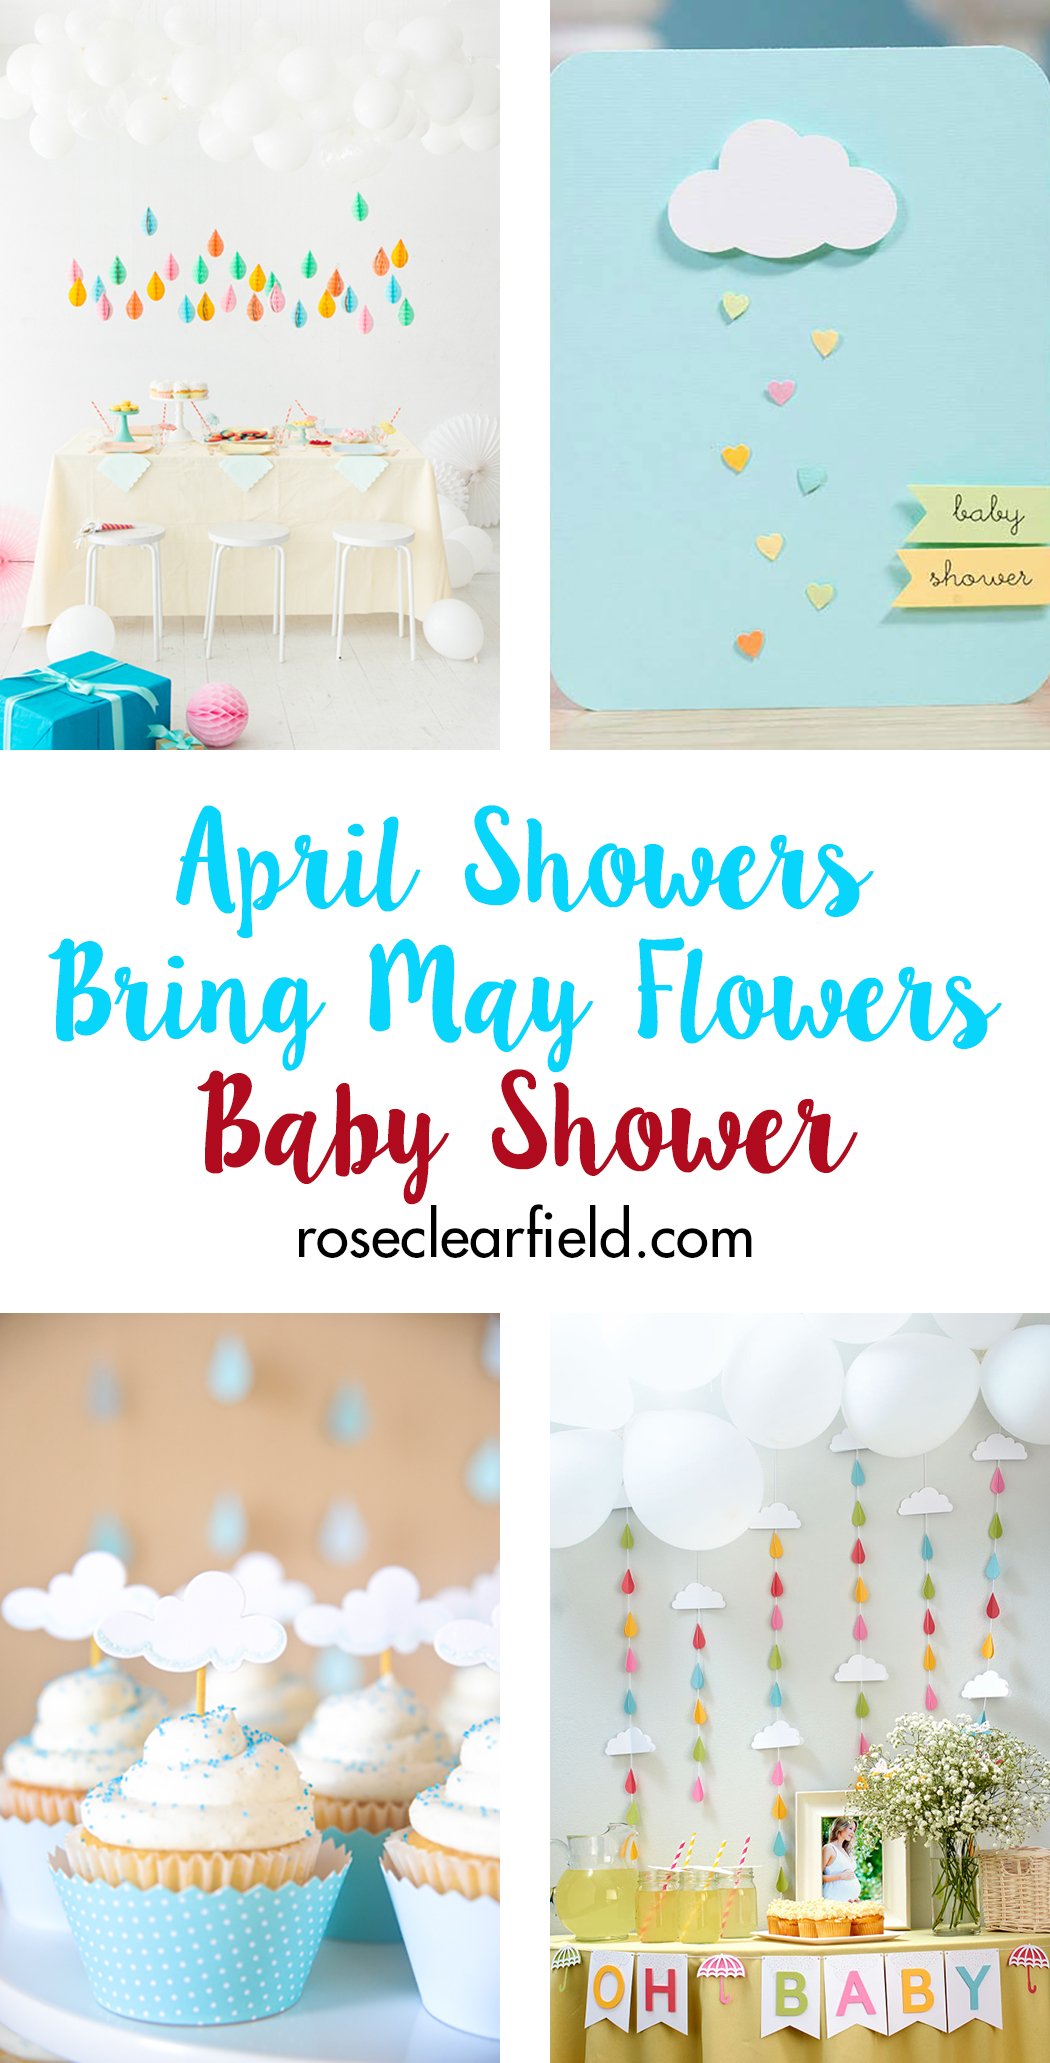 April Showers Bring May Flowers Baby Shower | http://www.roseclearfield.com